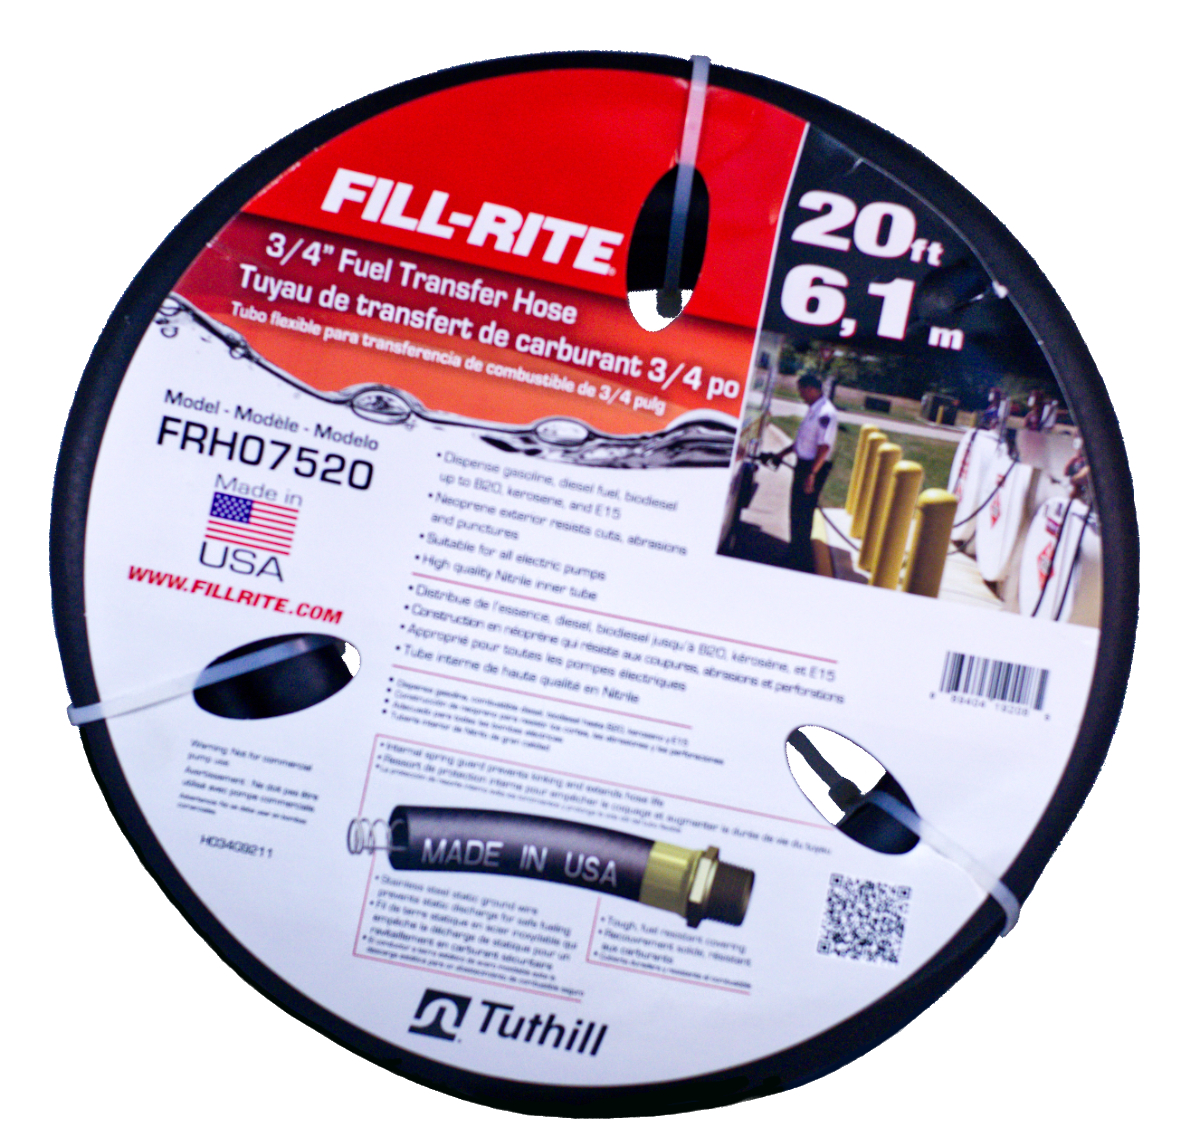 Fill-Rite FRH07520 - 3/4 Inch x 20 Foot Fuel Transfer Hose